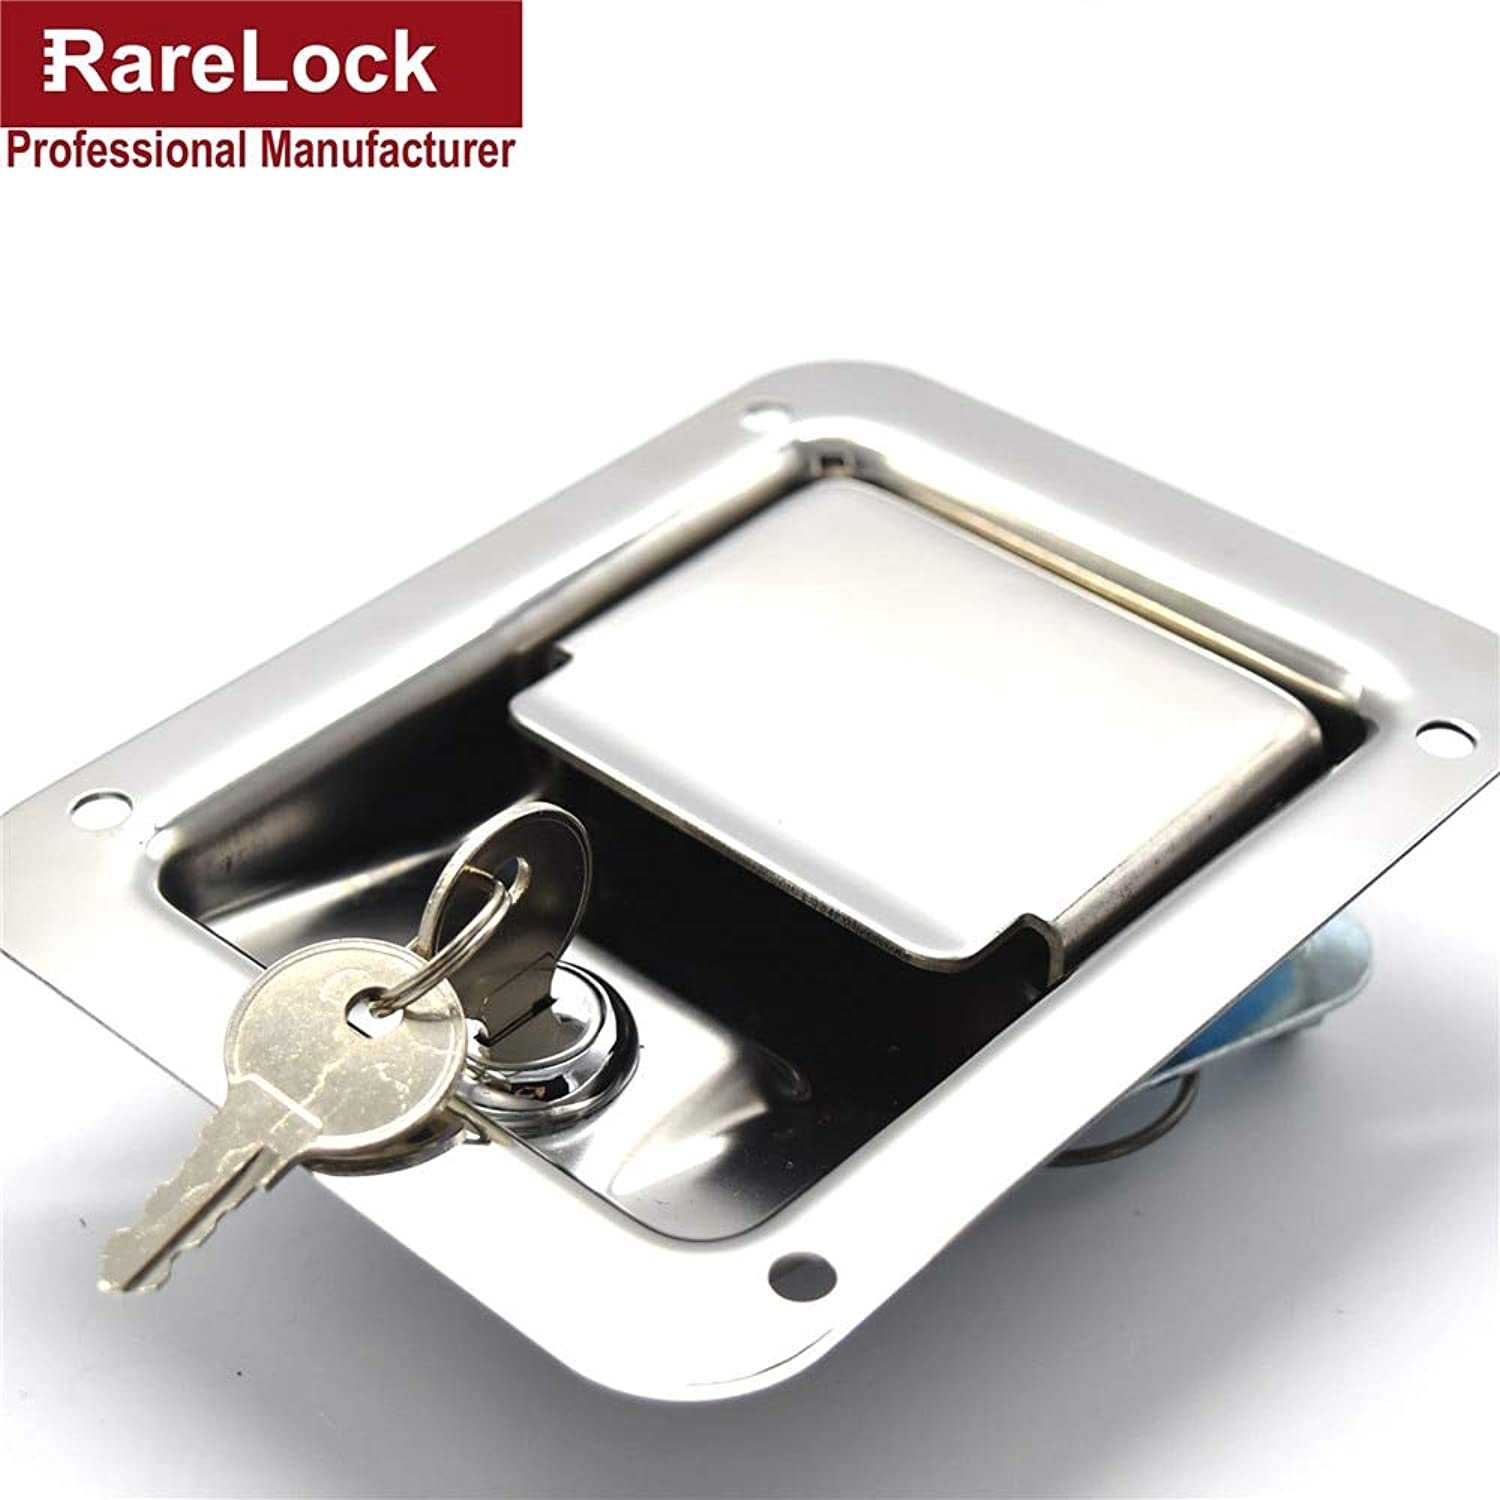 Rarelock New Design Professional Stainless Steel Hardware Bus,Truck Car Door Lock Cerradura d